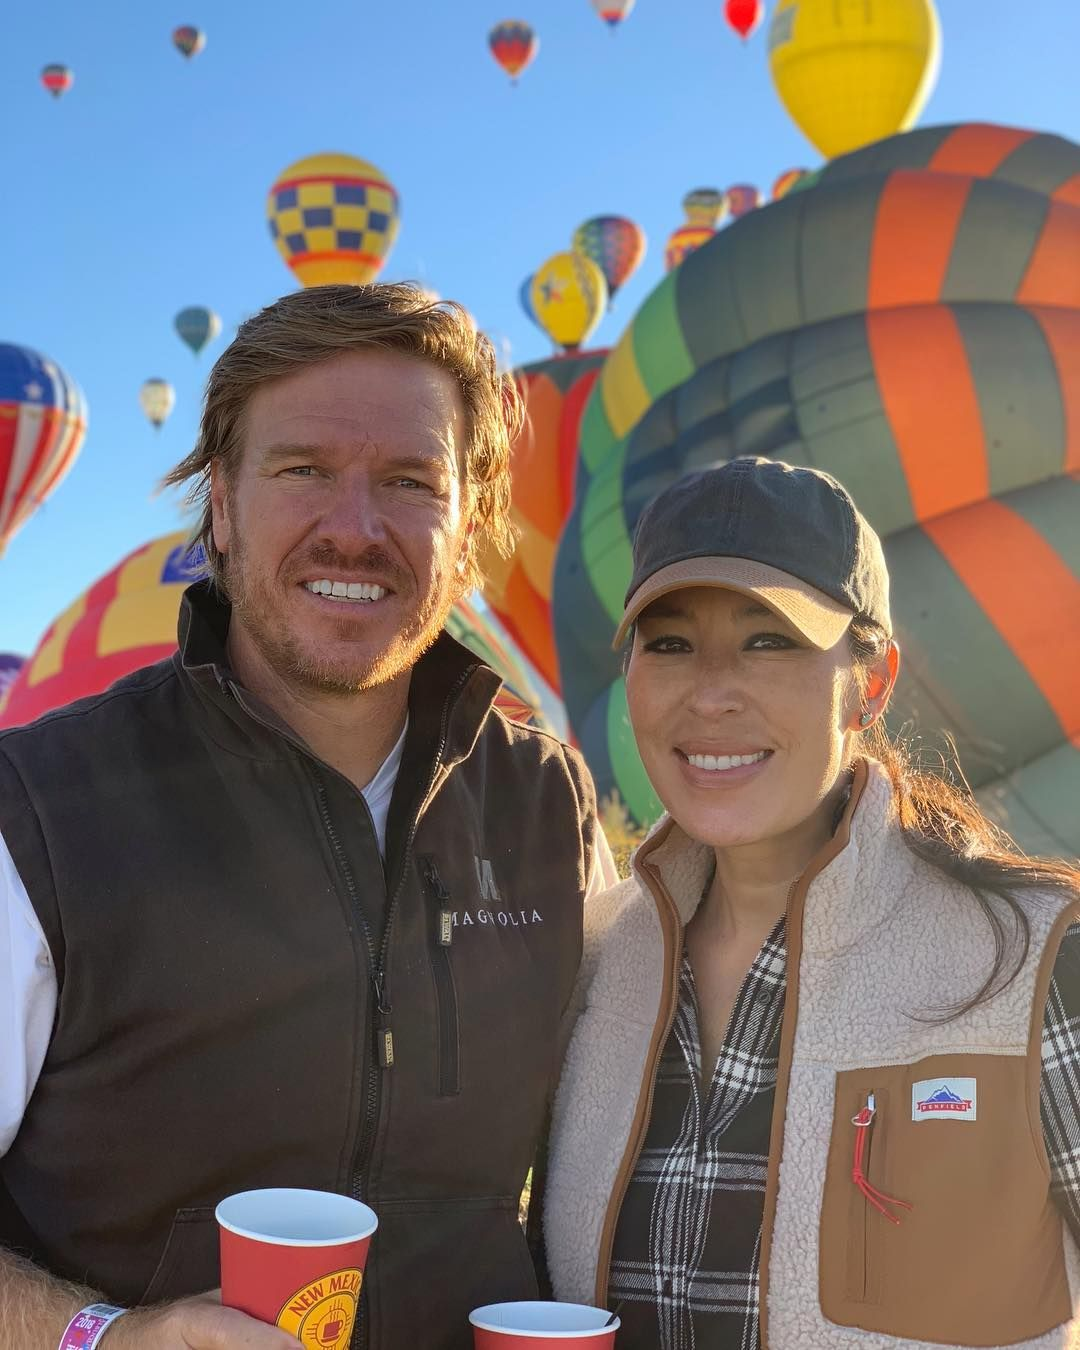 These Kids Dressed Up as Chip and Joanna Gaines are Doing Halloween Right